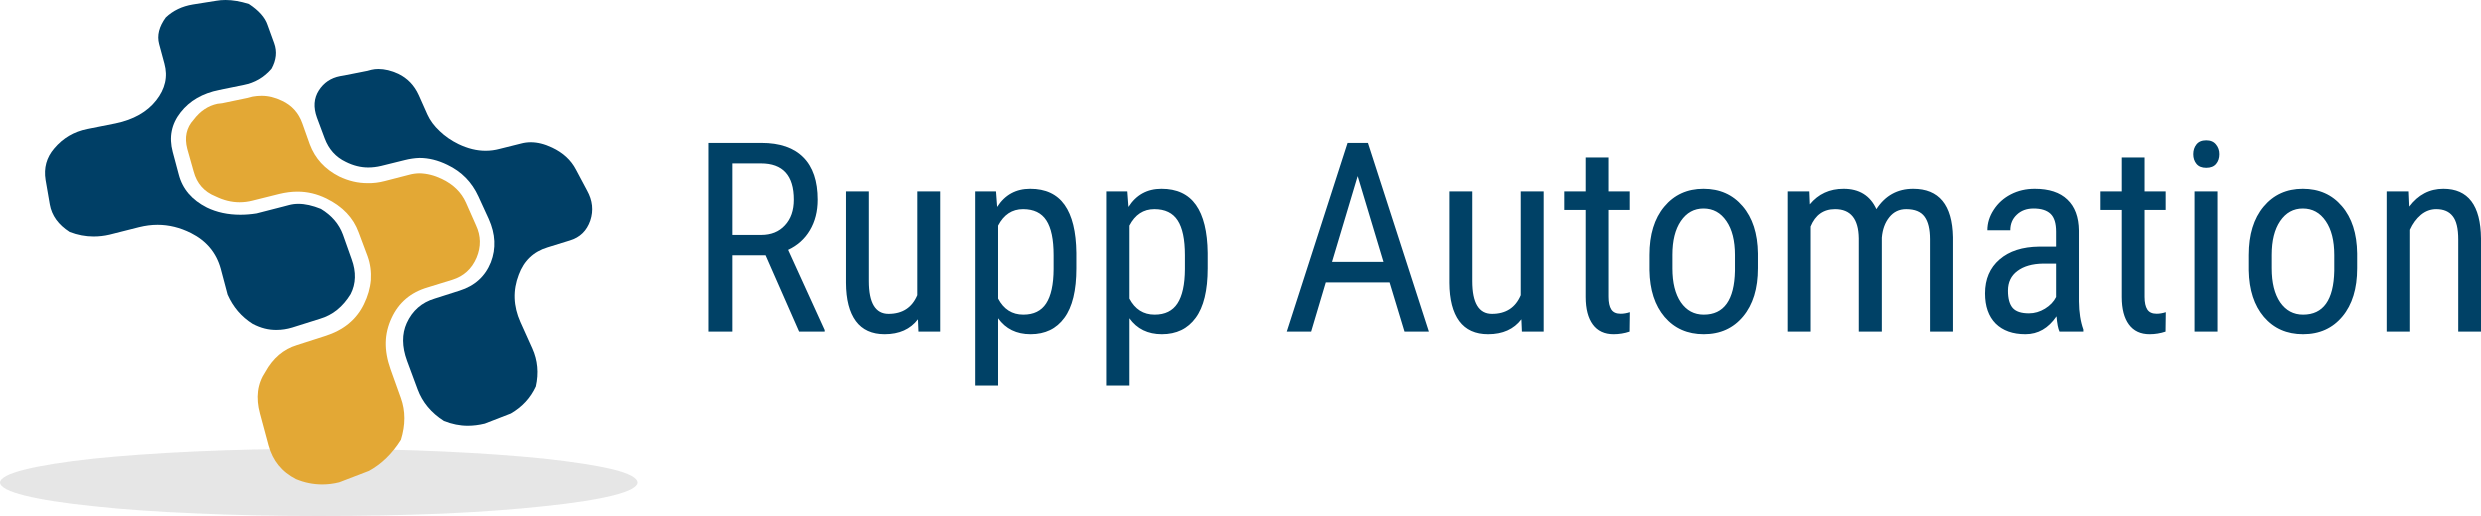 Rupp Automation